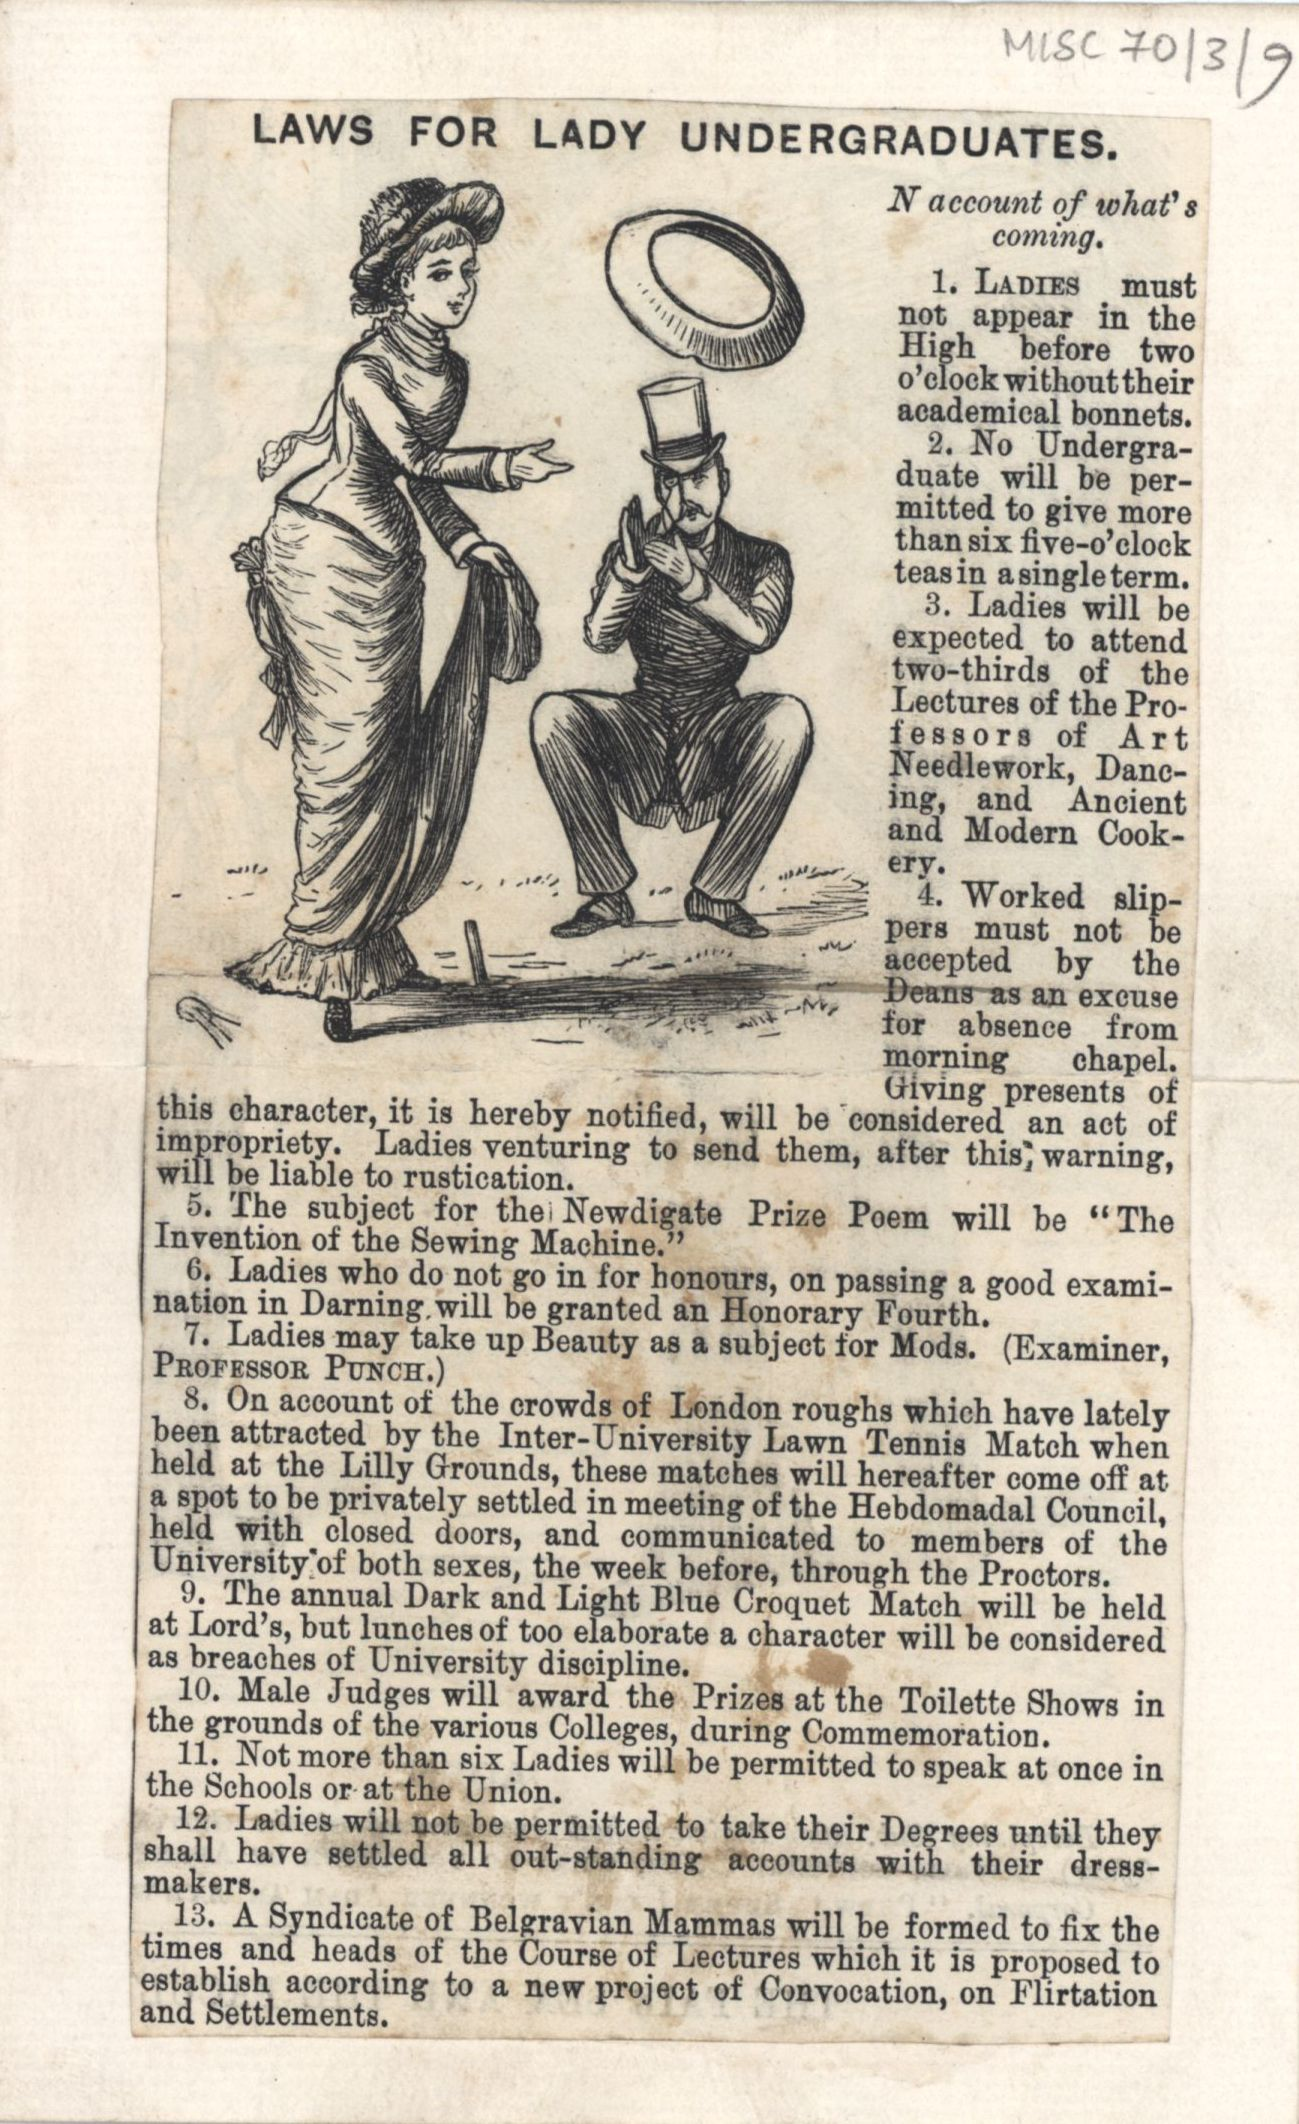 This Victorian parody showing the uphill battle women had, to overcome the prejudice that women were chatterboxes concerned only with needlework and pretty dresses. [Misc. 70/3/9]